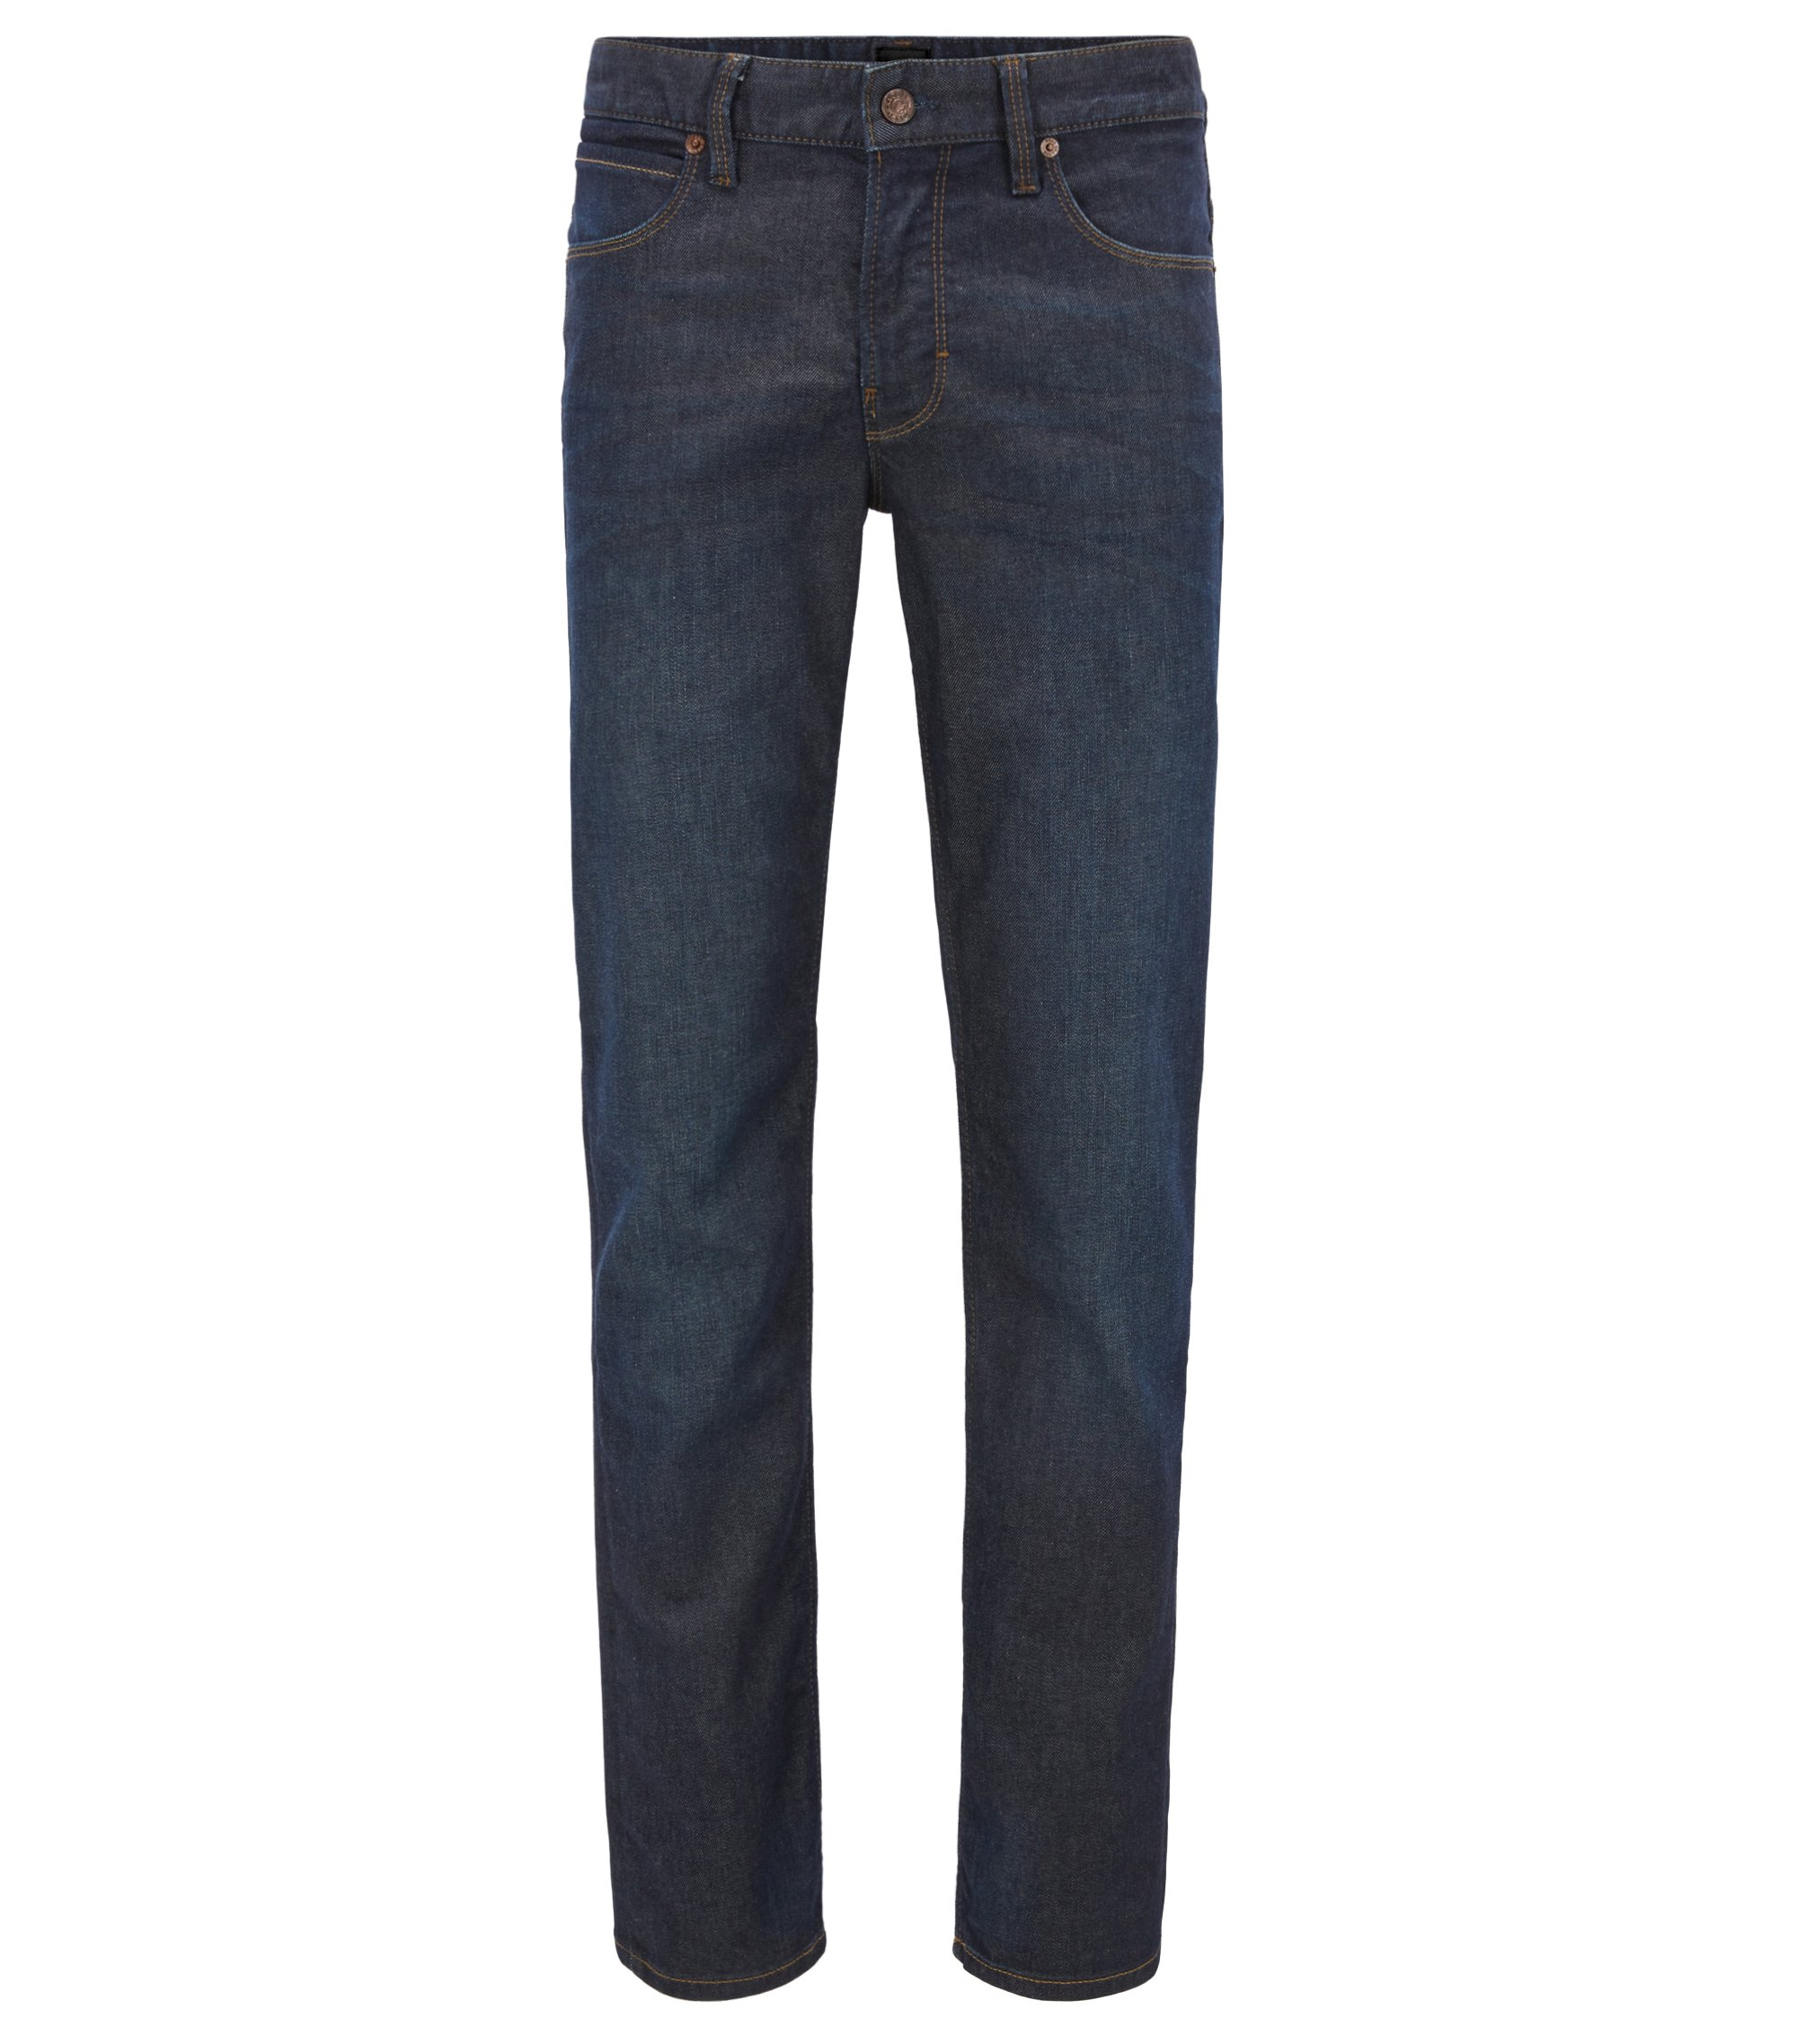 Jeans Slim Fit en denim indigo stretch, Bleu foncé